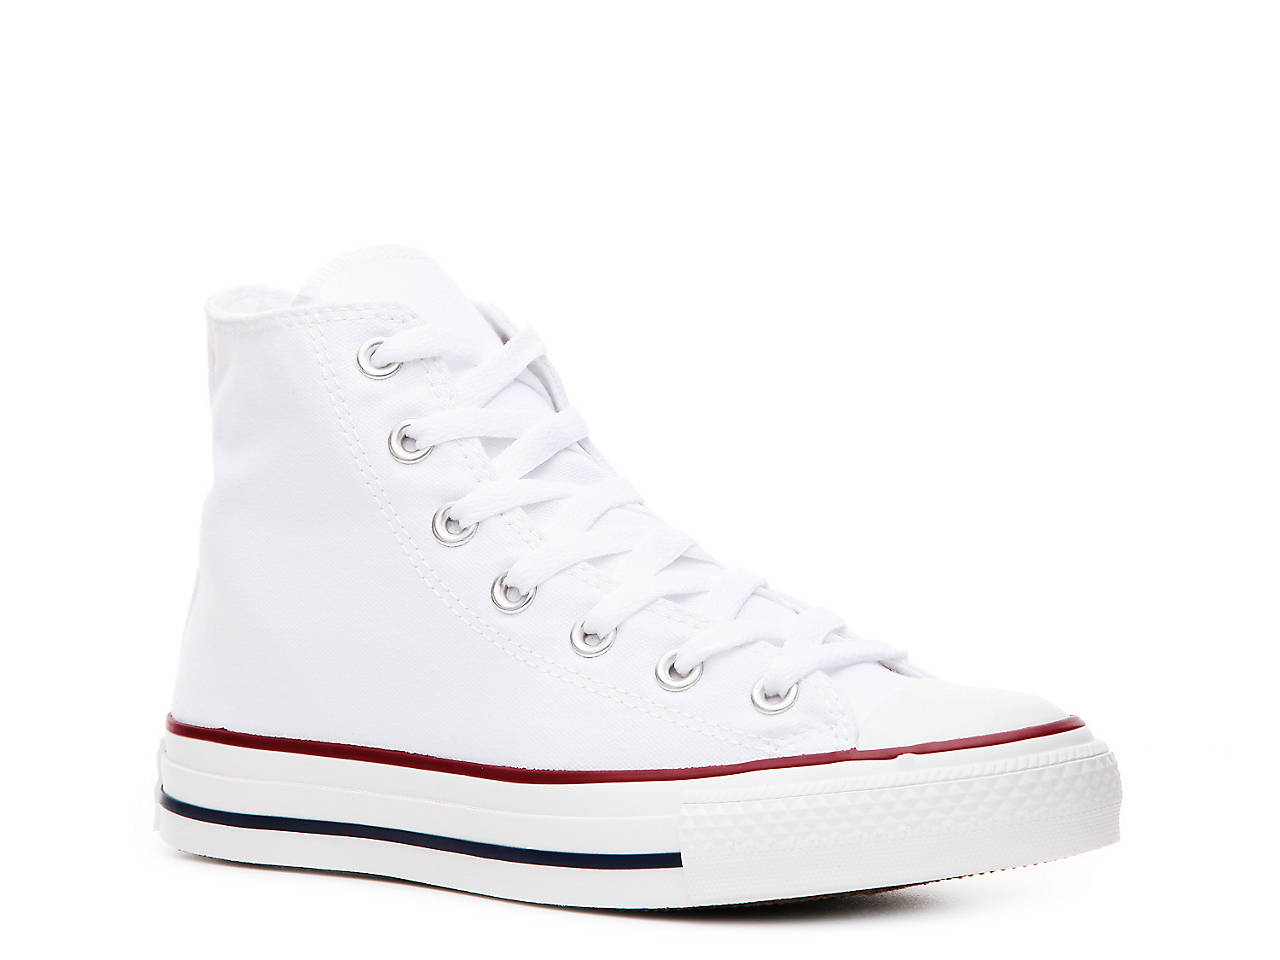 17e802025b4a Converse Chuck Taylor All Star High-Top Sneaker - Women s Women s ...